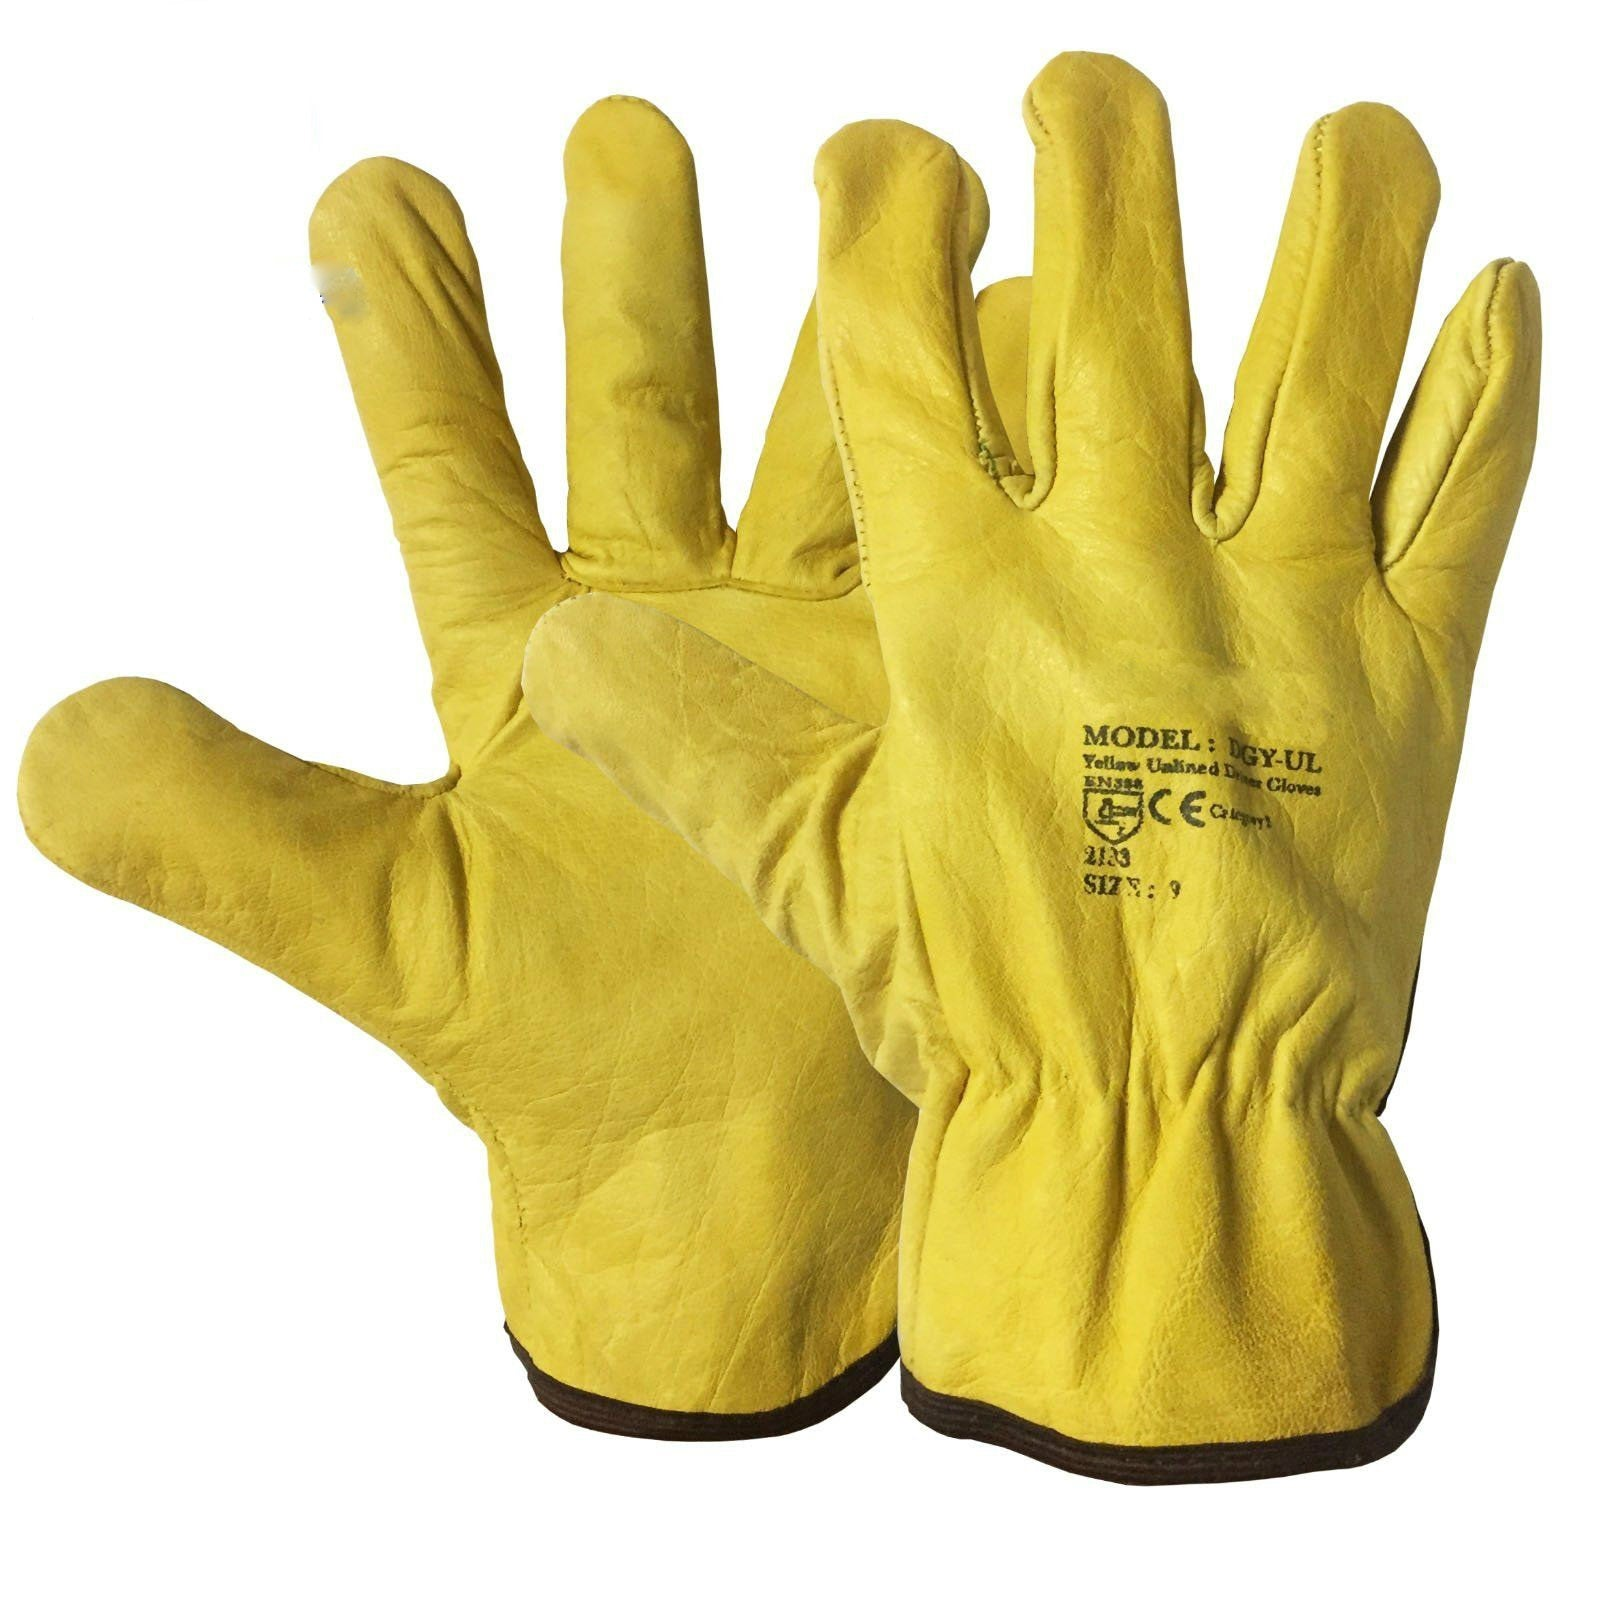 100 Pairs Unlined Yellow Leather Cotton Driver Work Glove - RUFTUF